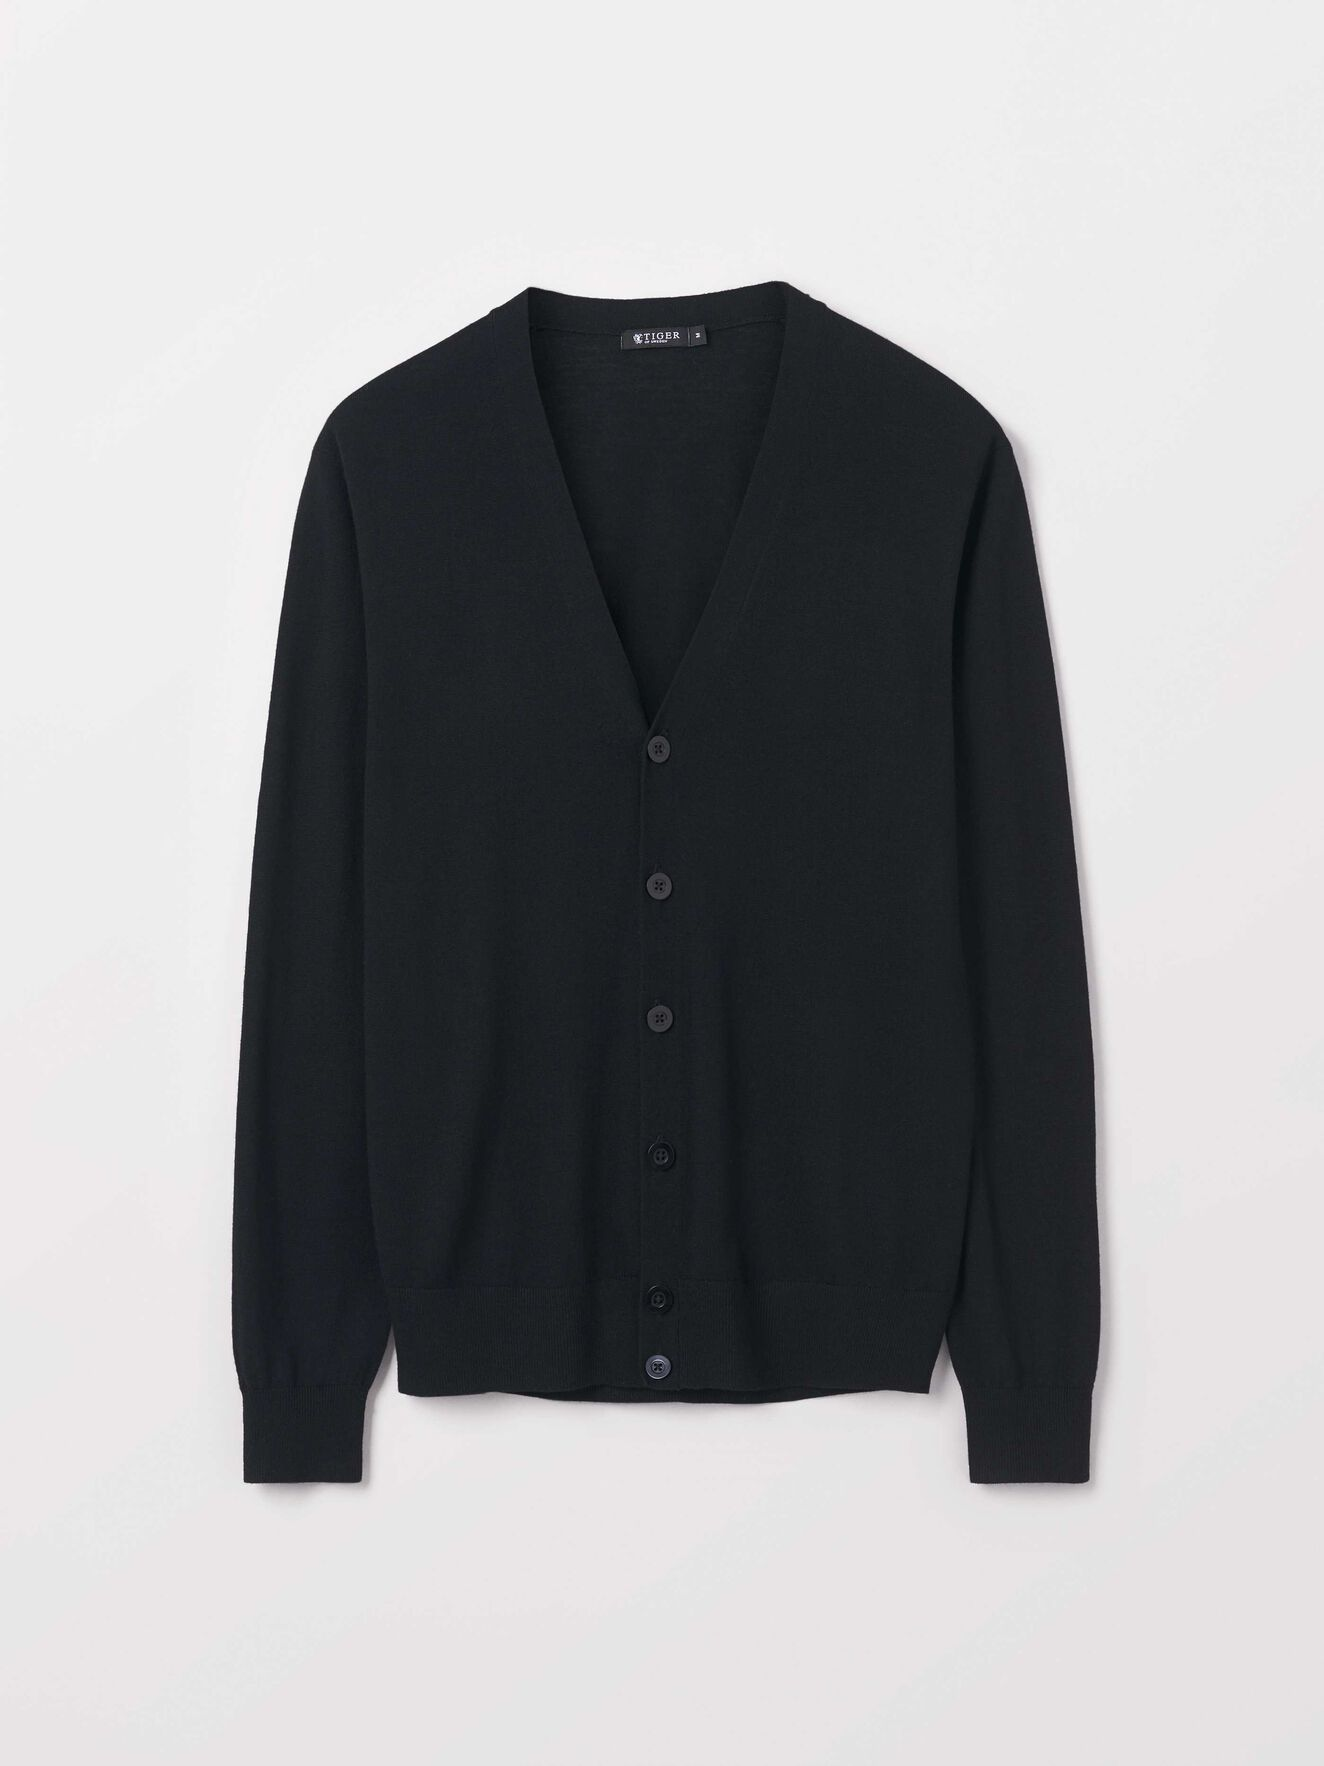 Navid Cardigan in Black from Tiger of Sweden